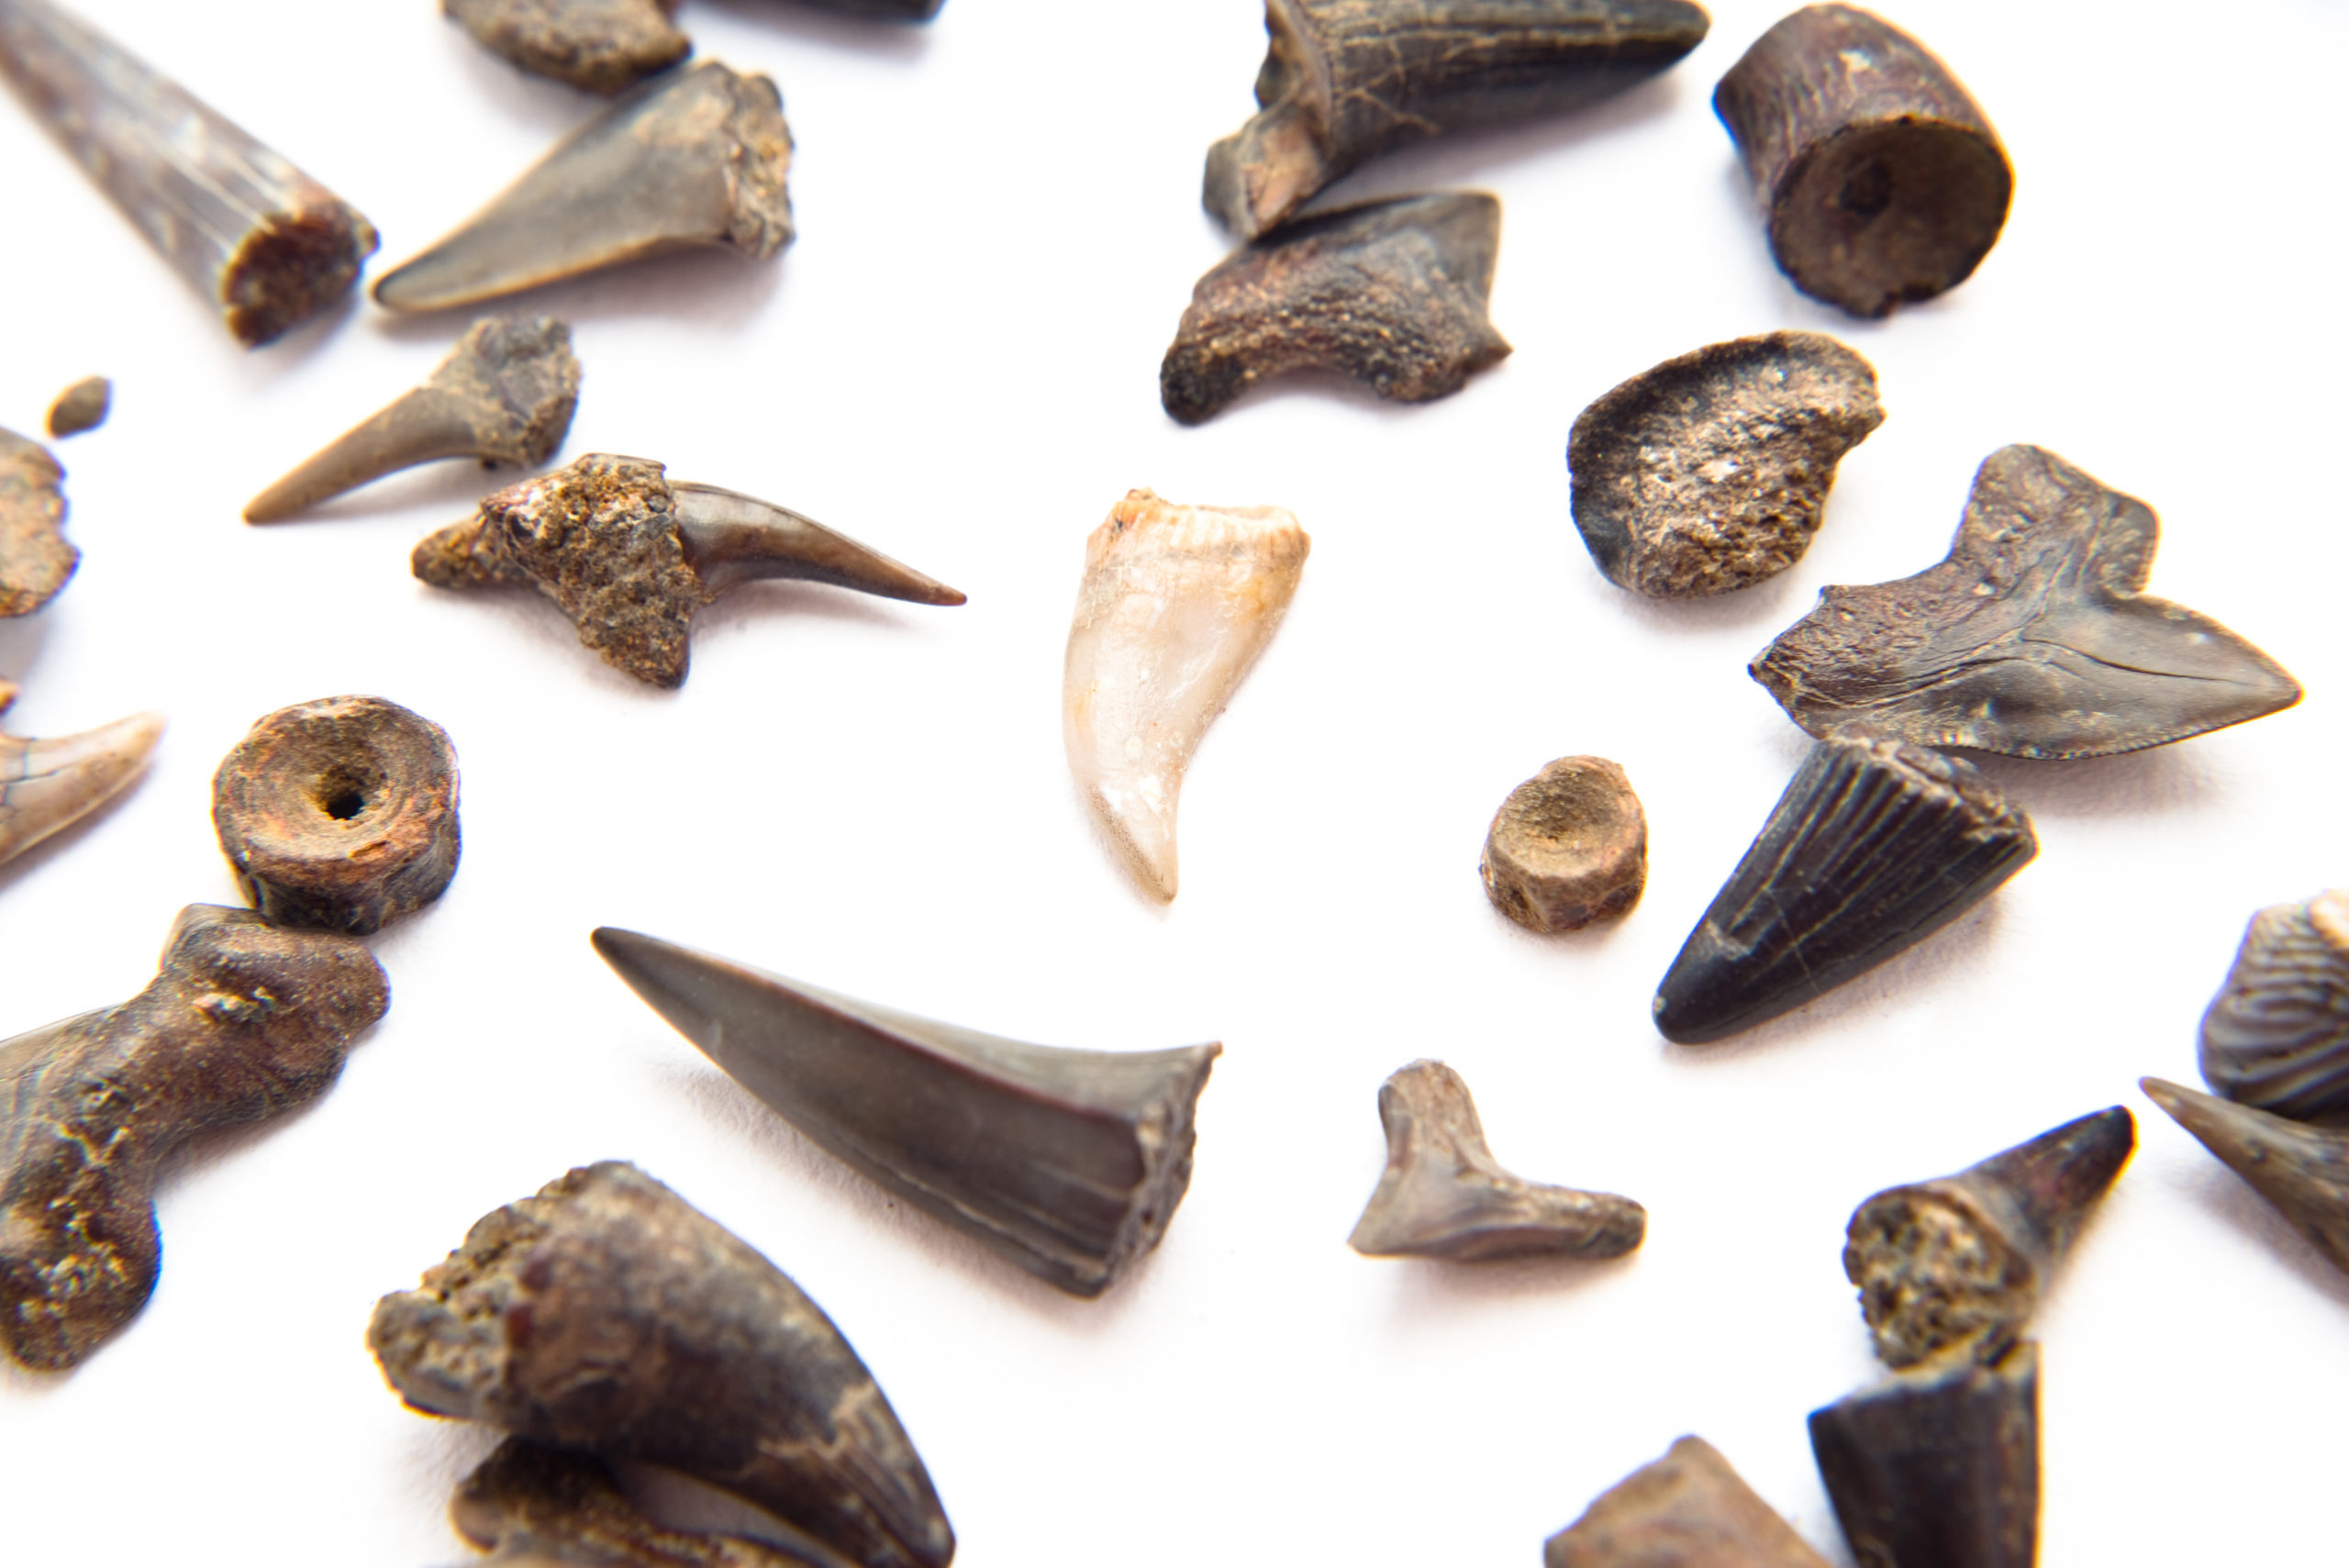 Curator Talk: Beachcombing with Curator of Natural History Matthew Gibson